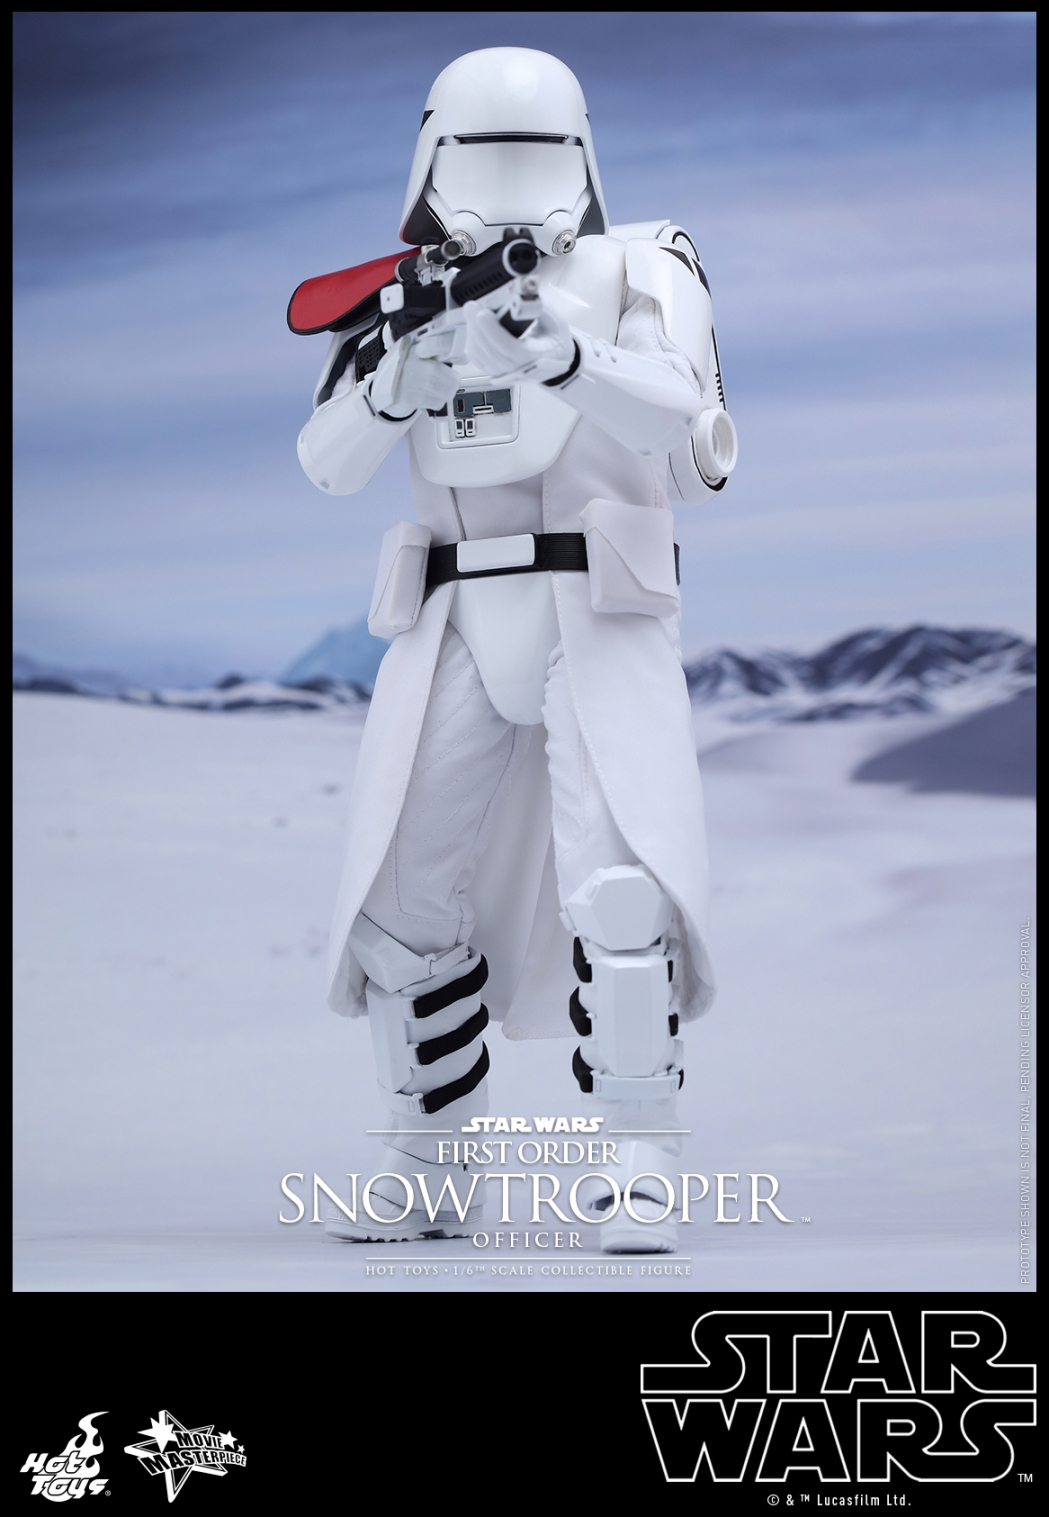 Hot Toys - Star Wars - The Force Awakens - The First Order Snowtrooper Officer Collectible Figure_PR1